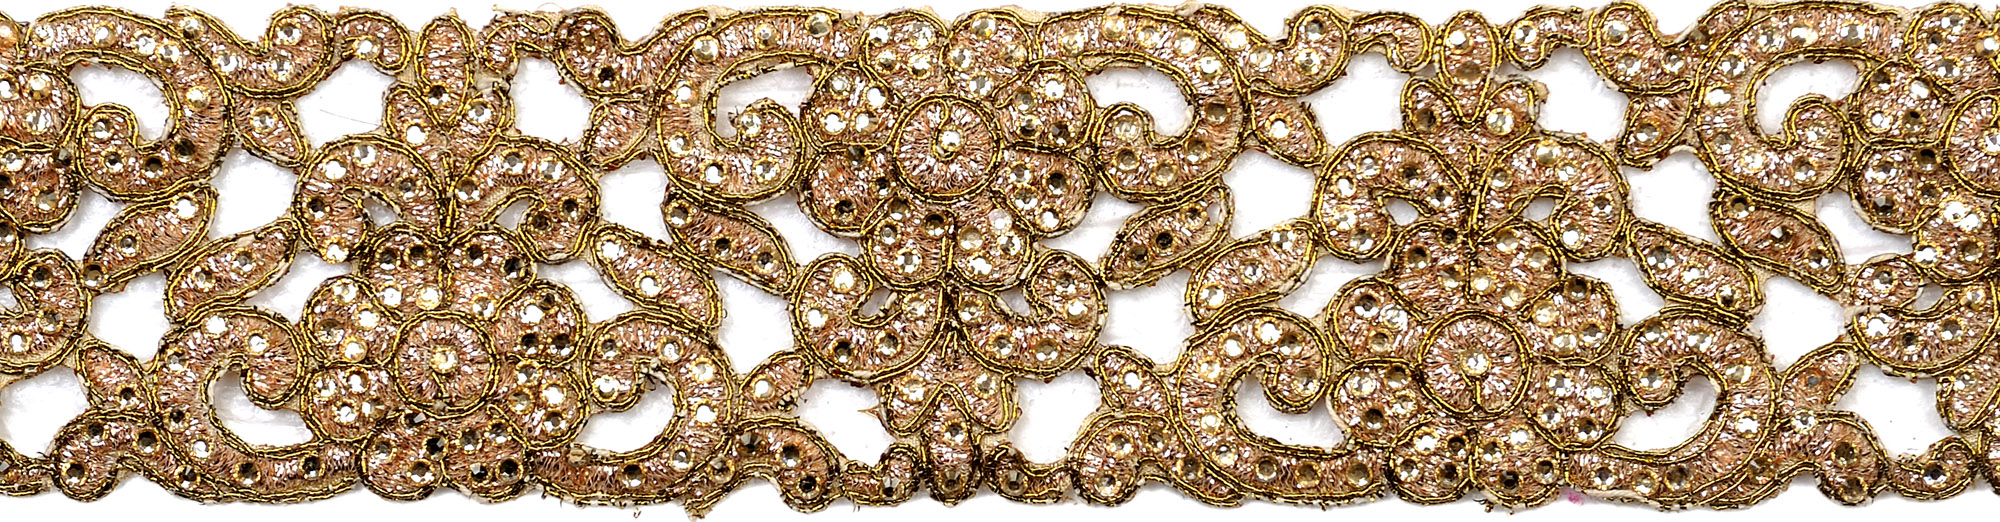 Golden zardozi broder with metallic thread embroidery by hand